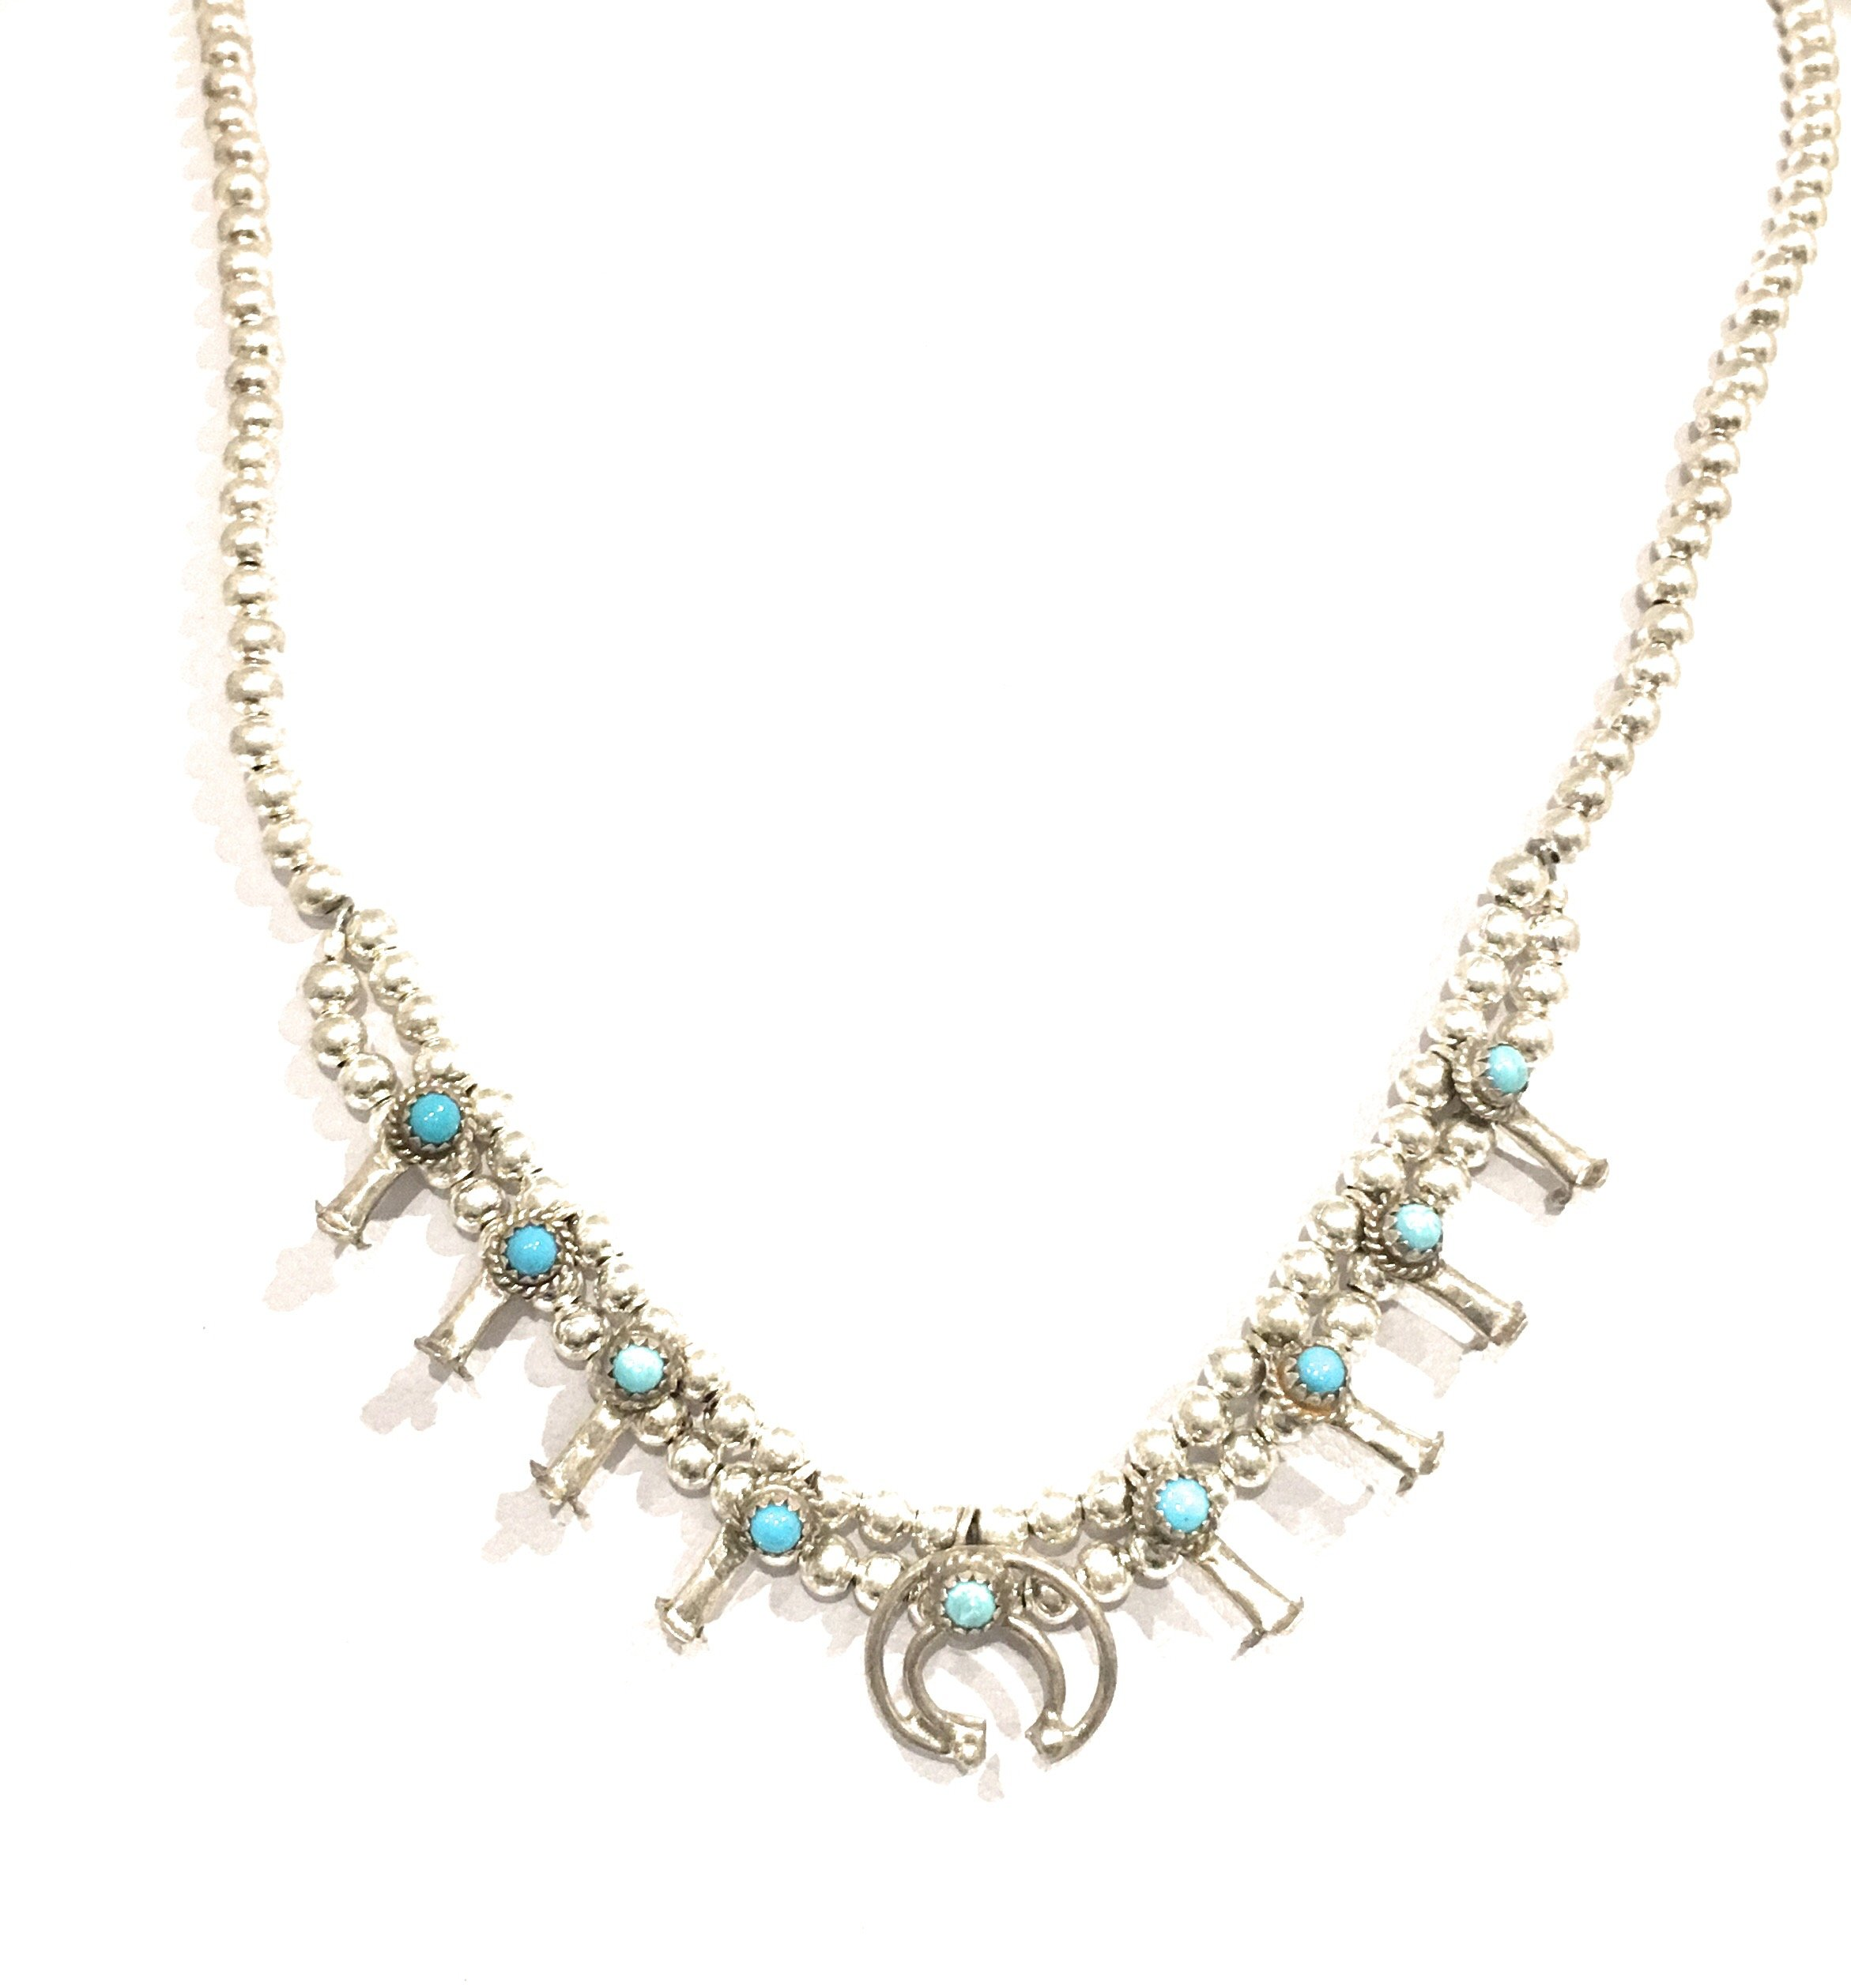 Masha Mashasilver Easter Special ! Sterling Silver Necklace By Squash Blossom SB Turquoise, Made in USA - Exclusive Southwestern Handmade Jewelry, 16.5'' in Length Gift